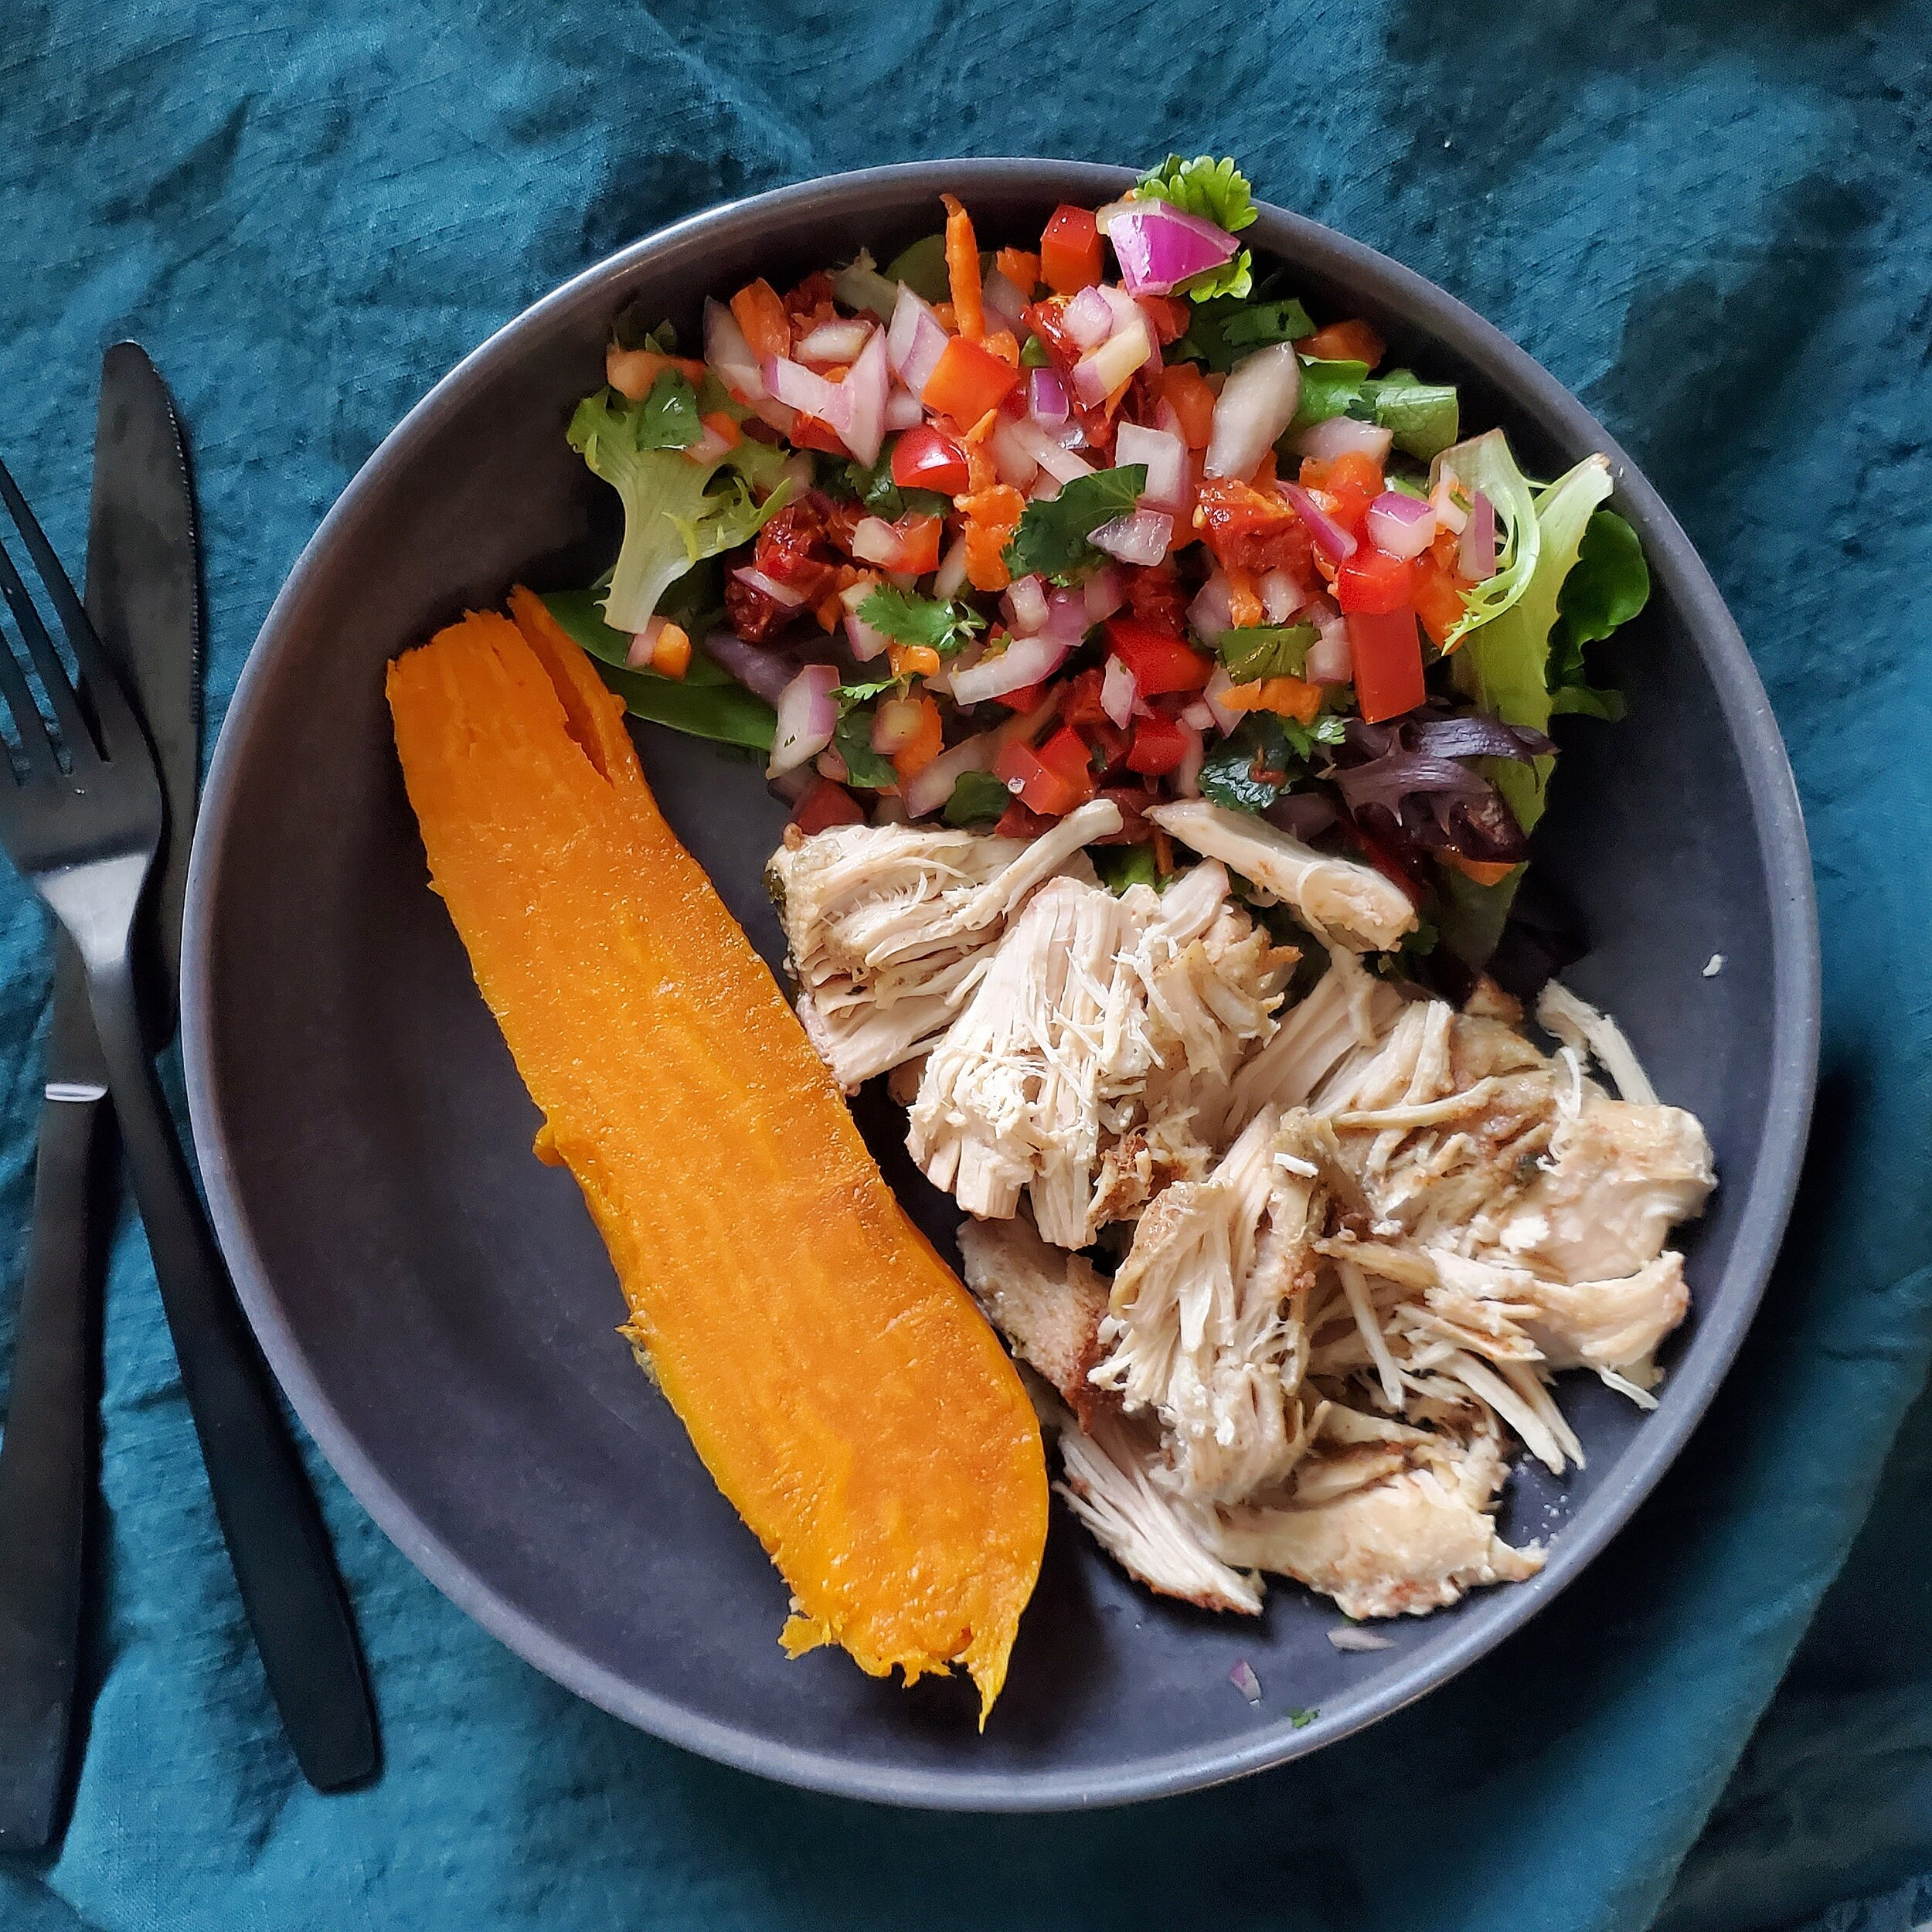 Add 5 oz of shredded chicken, 1/2 sweet potato, 1/2 cup spring mix salad, and 1/2 cup of veggie salad/vinaigrette.  Add a little BBQ sauce, mix up and enjoy! -